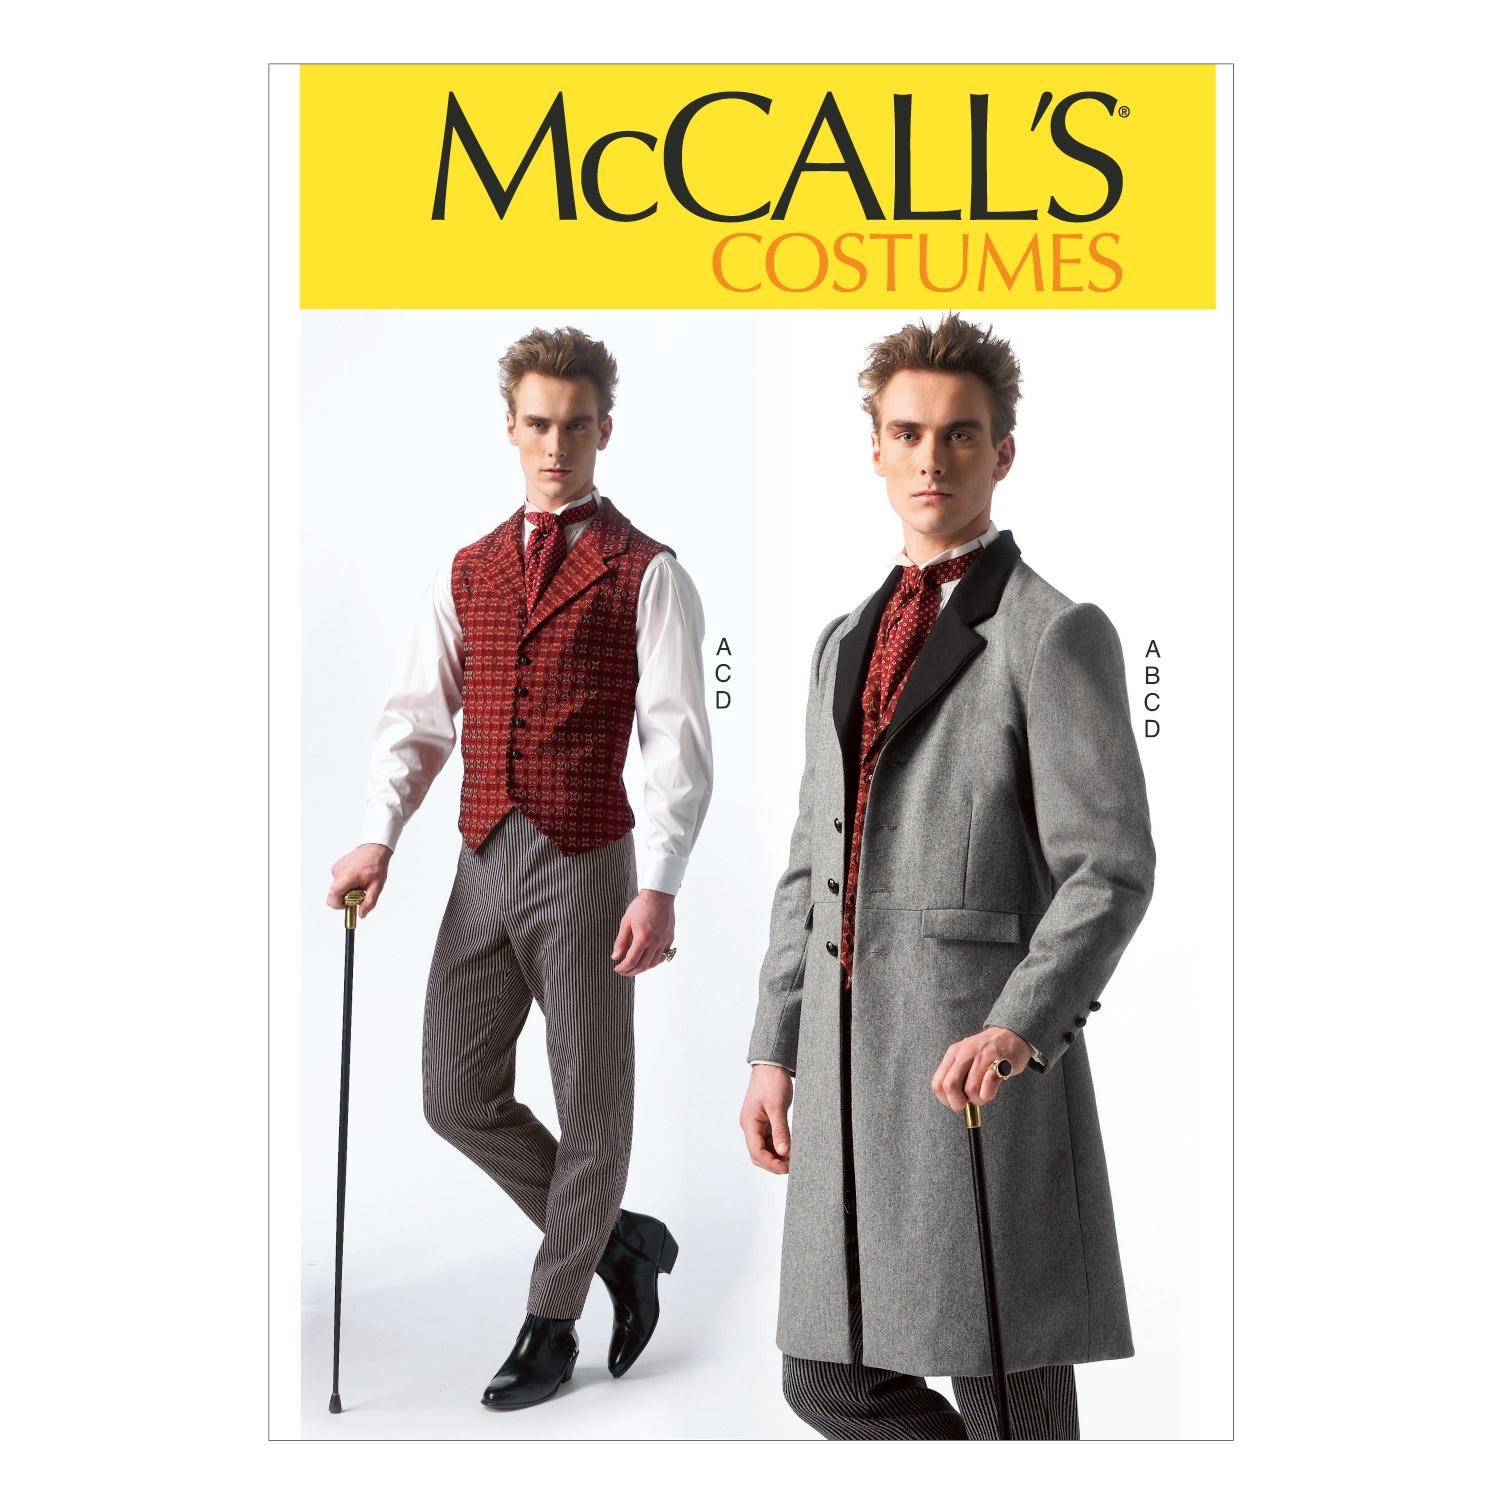 McCalls M7003 Accessories, Coats, Costumes, Halloween, Pants, Vests